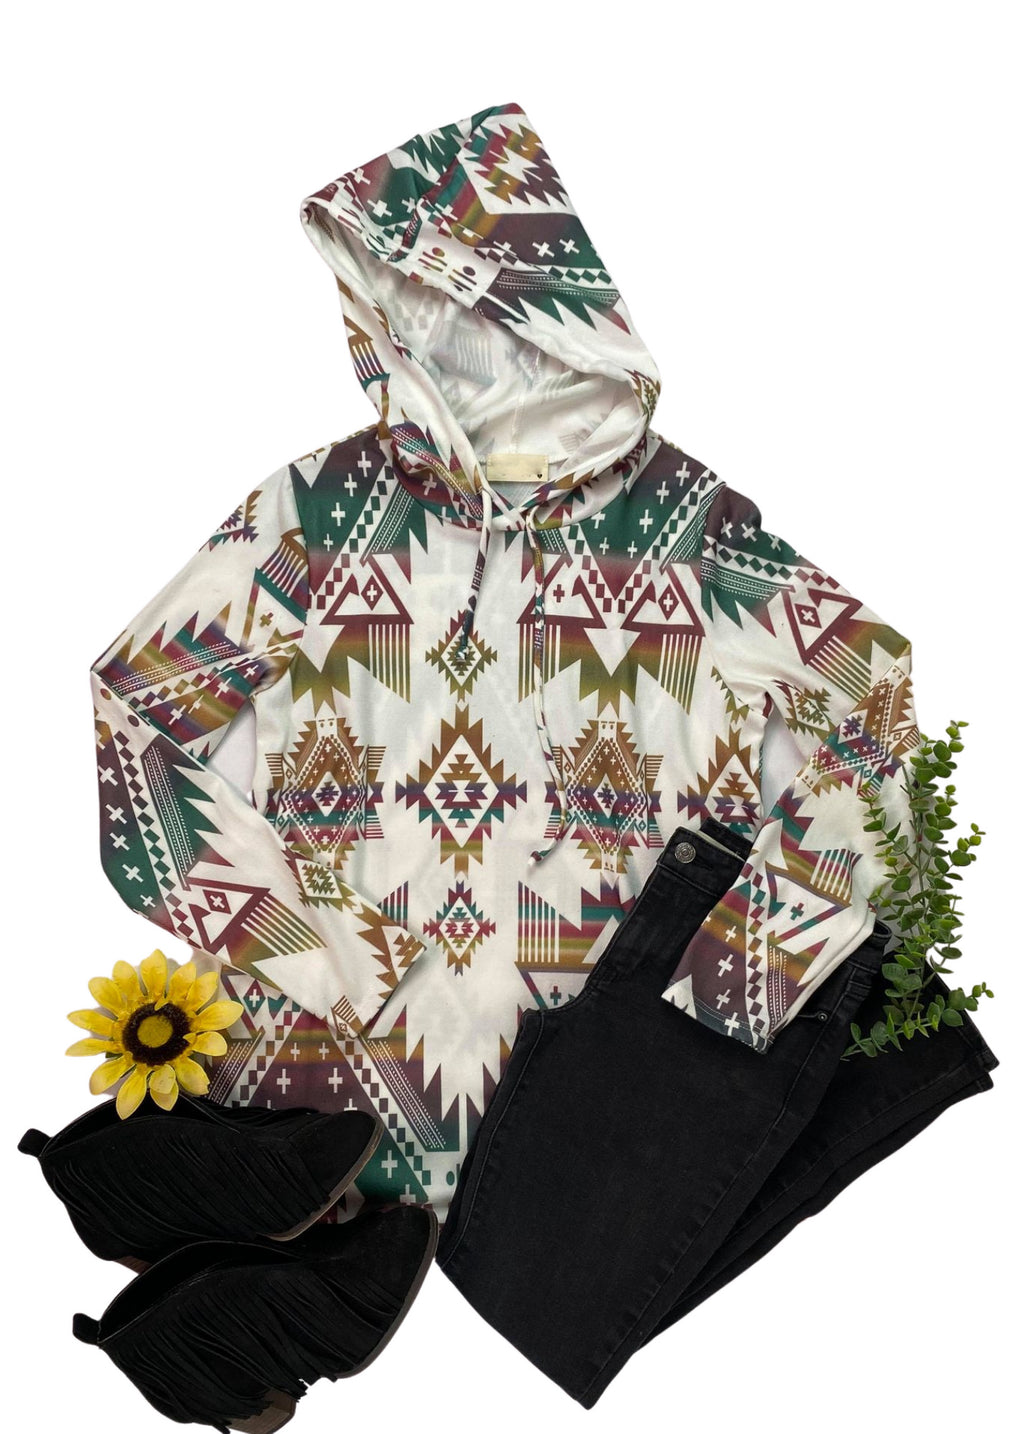 Multi Color Aztec Hoodie Long Sleeve Top on white background